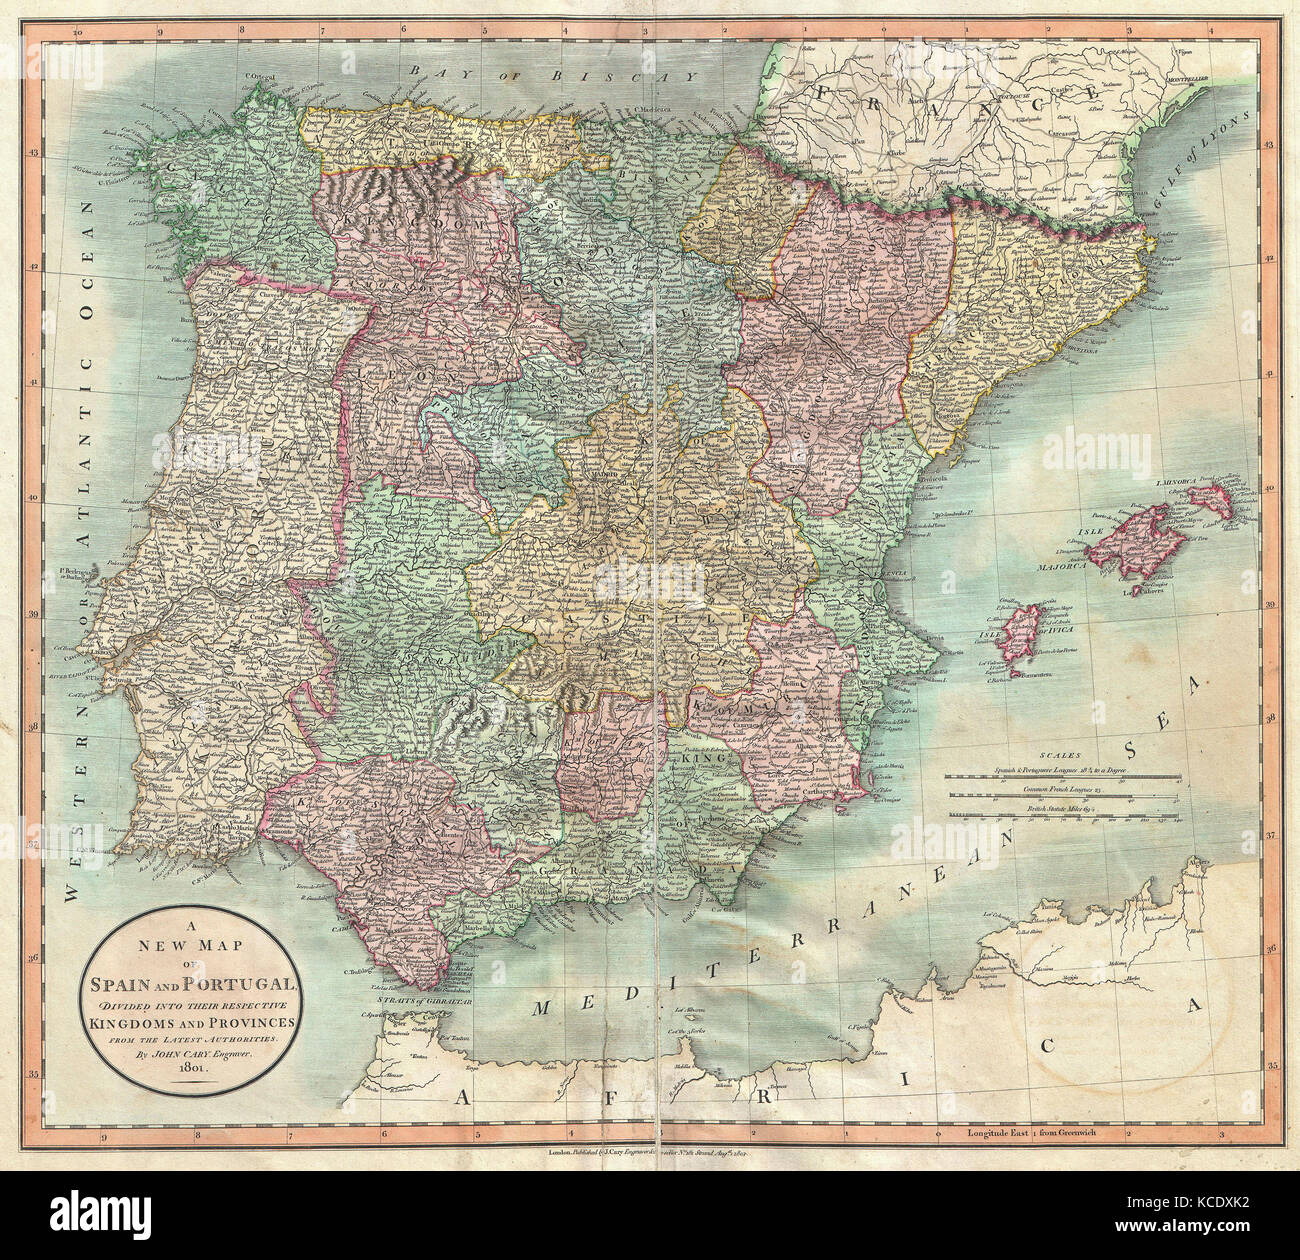 Cary Map Of Spain And Portugal John Cary - Portugal map english